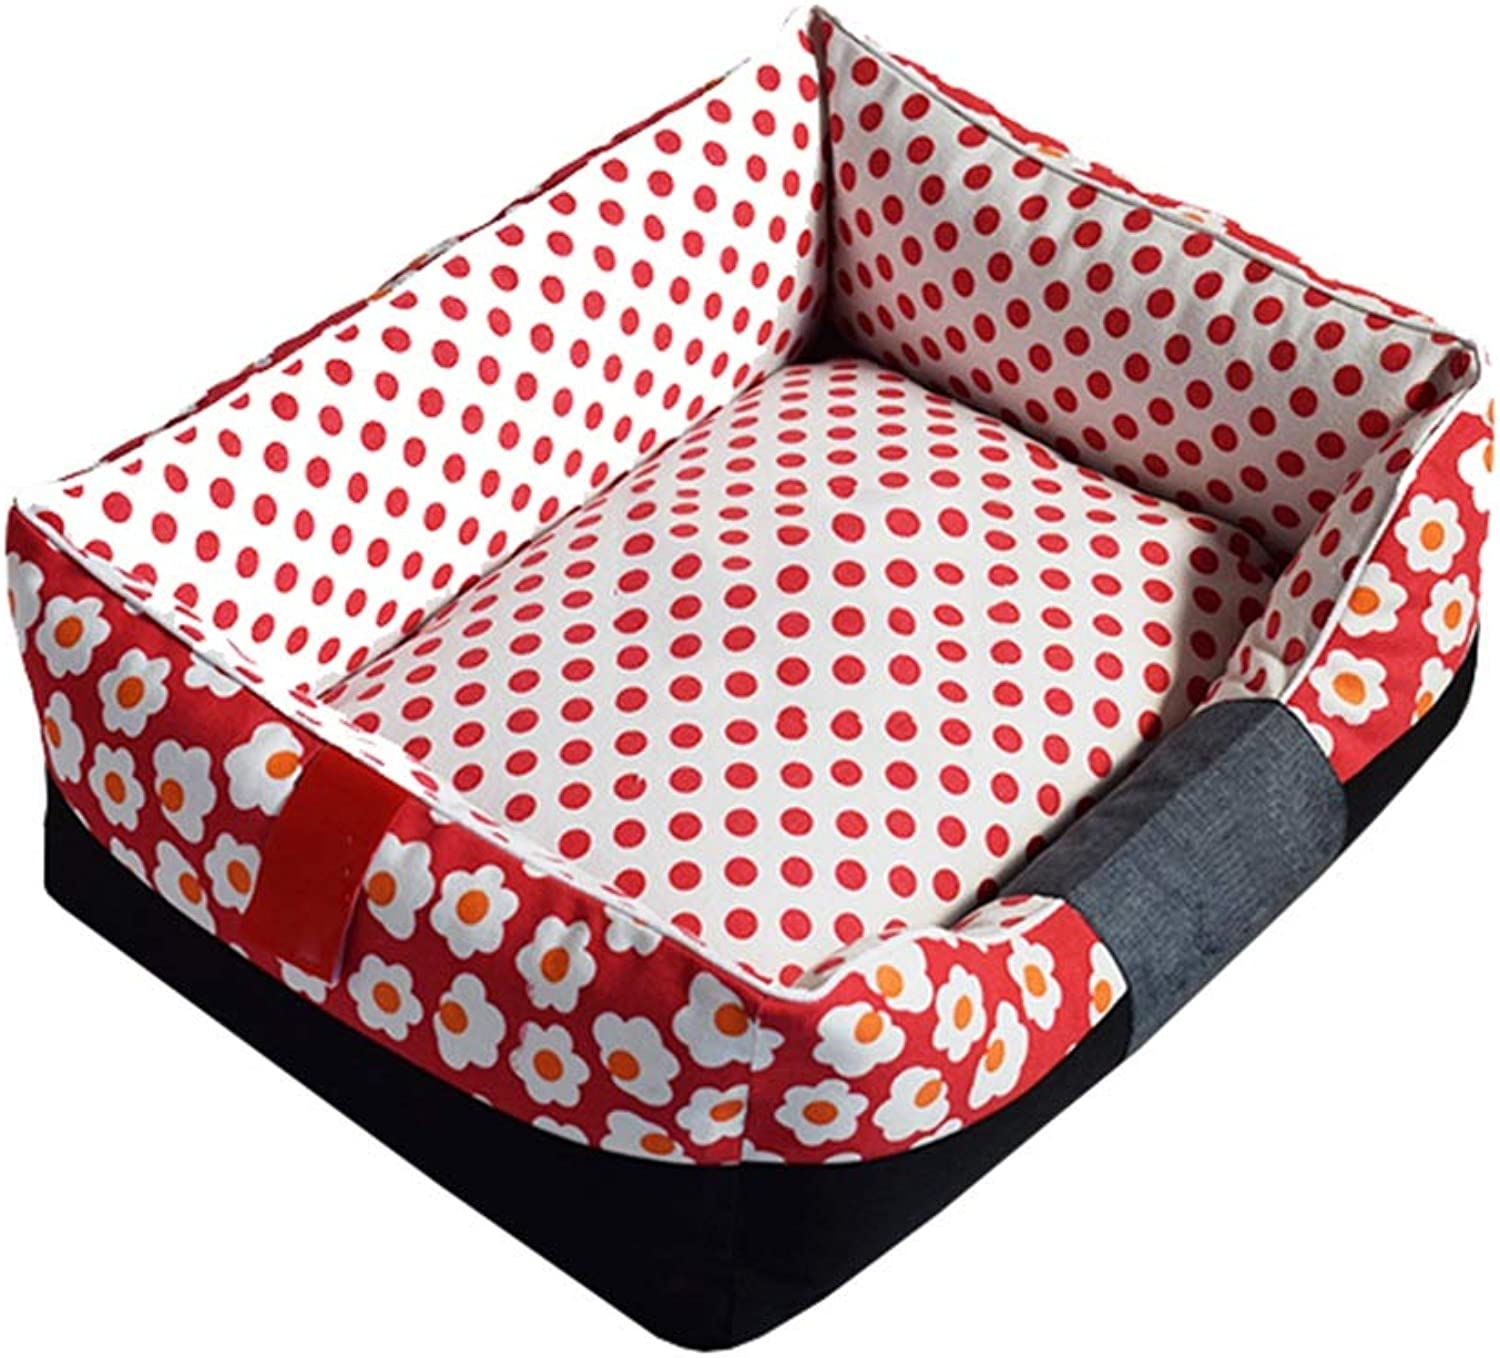 Dog Bed, Cotton Printed Canvas Fabric Oxford Soft And Comfortable Kennel Dog Bed Dog Mat Cat Dog Sofa Four Seasons Pet Nest (color   RED, Size   M)